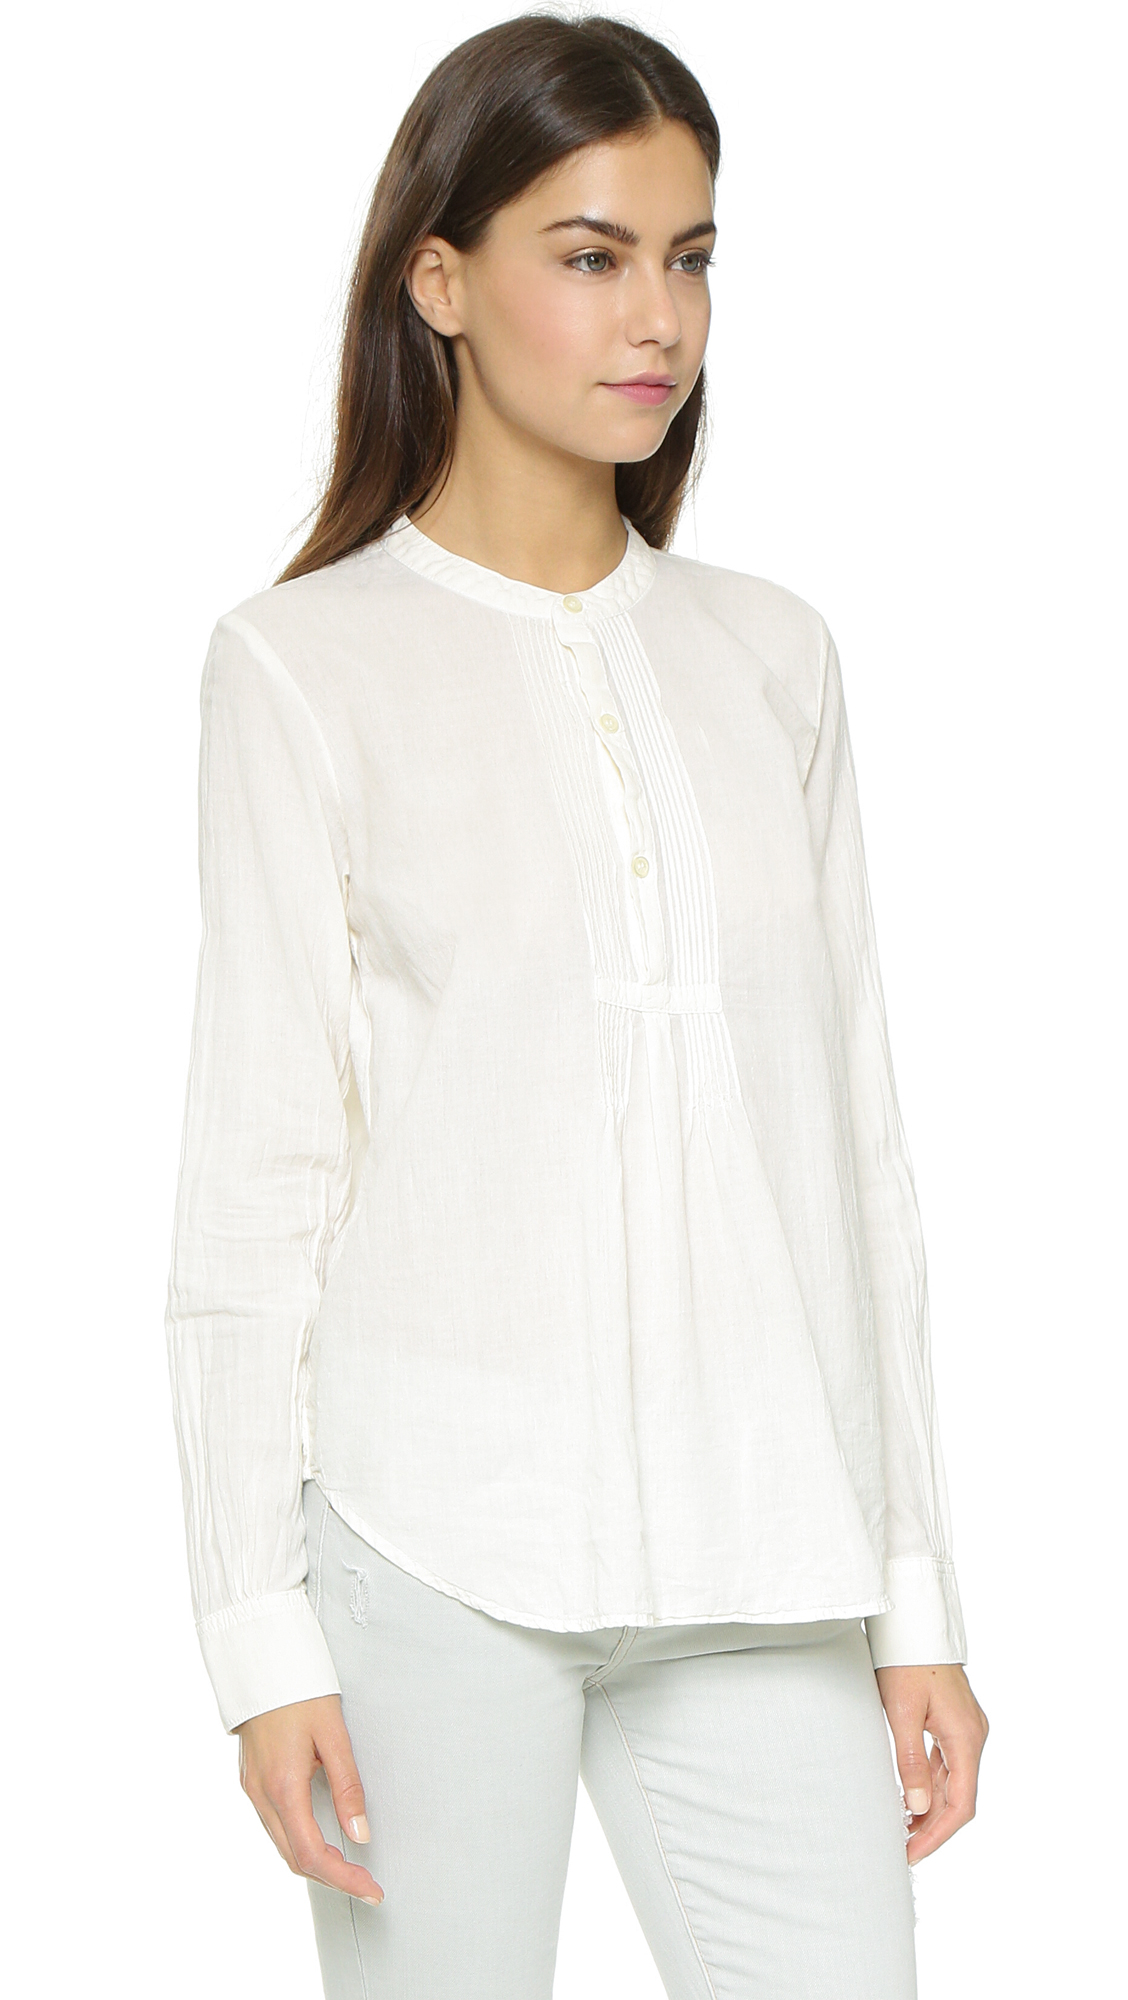 Pintuck blouse is appropriate under a blazer or jacket, or wear it alone on warm days. Made of easy-care polyester in a range of sophisticated colors. Machine wash and dry.4/5(1).